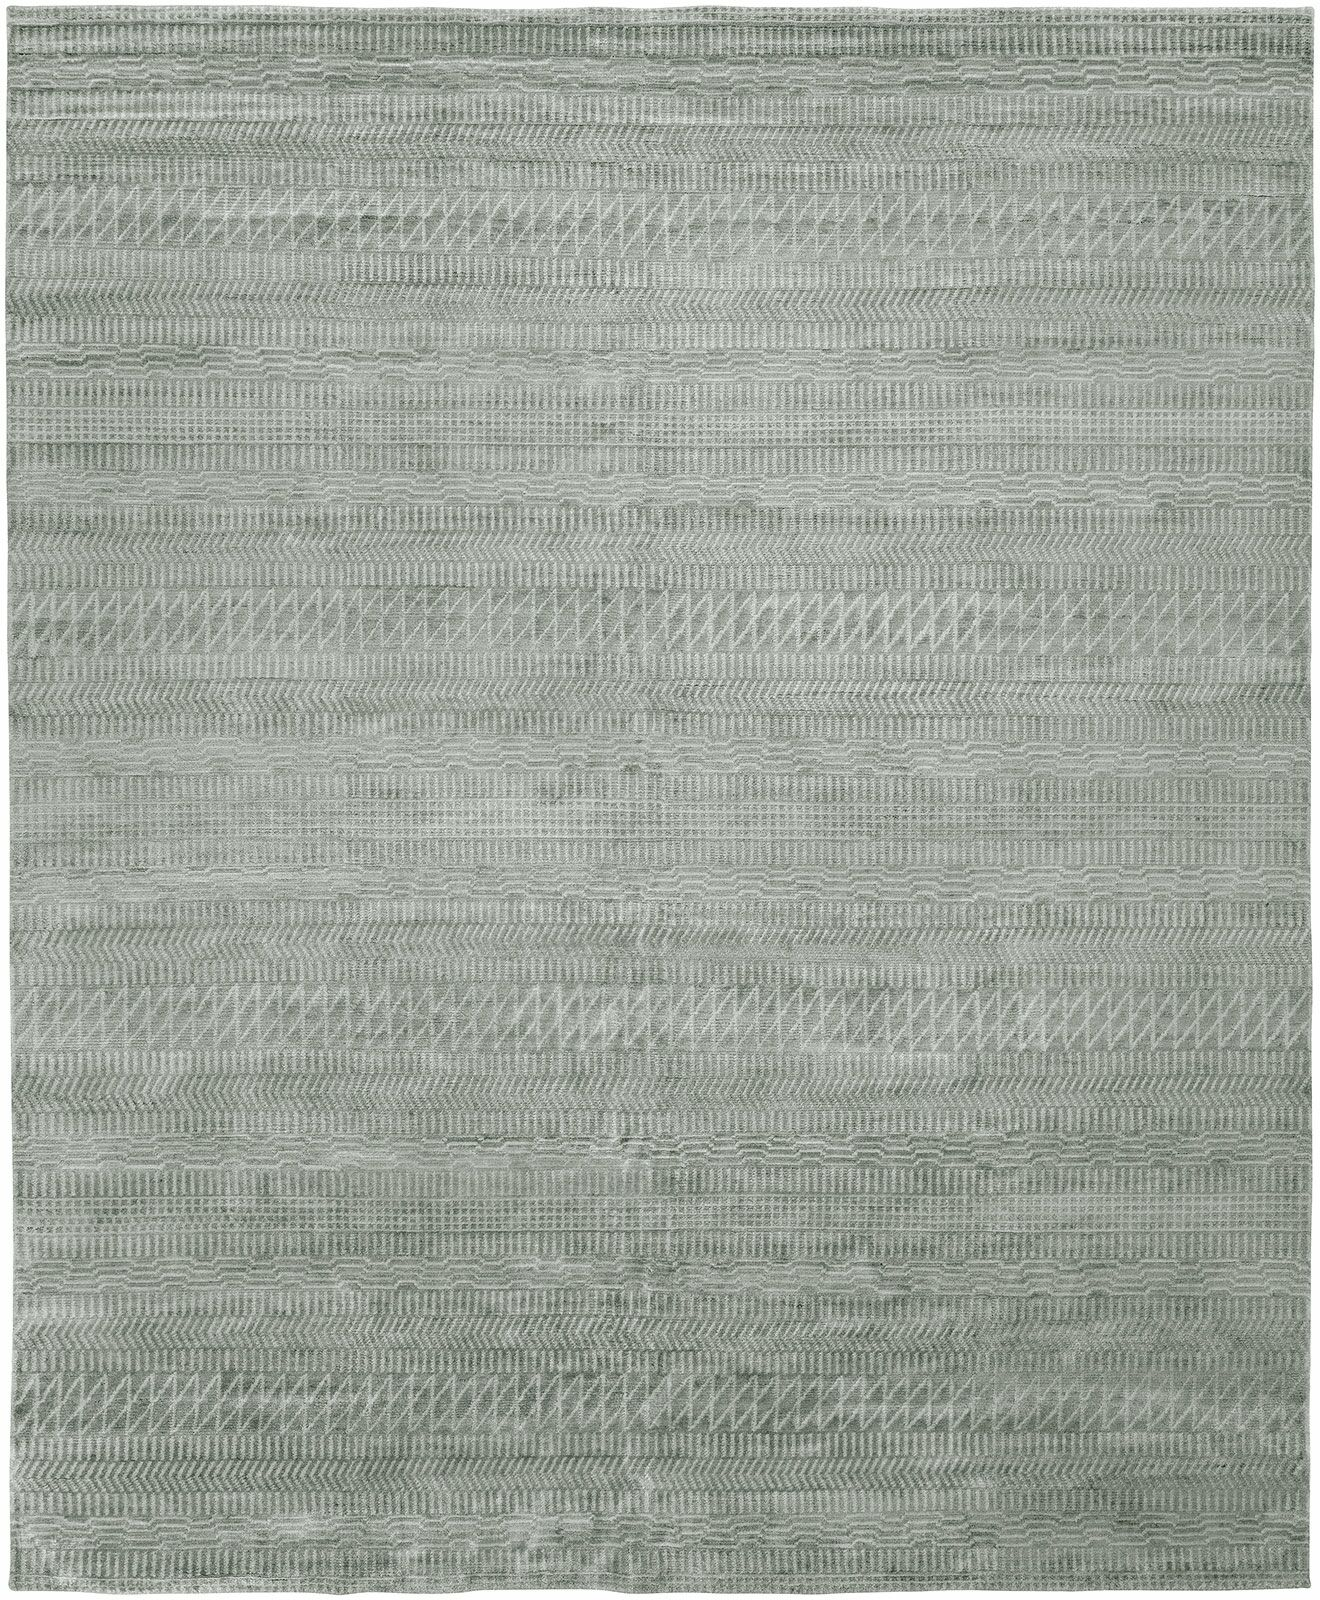 Heacock Hand-Knotted Wool Gray Area Rug Rug Size: Rectangle 6' x 9'